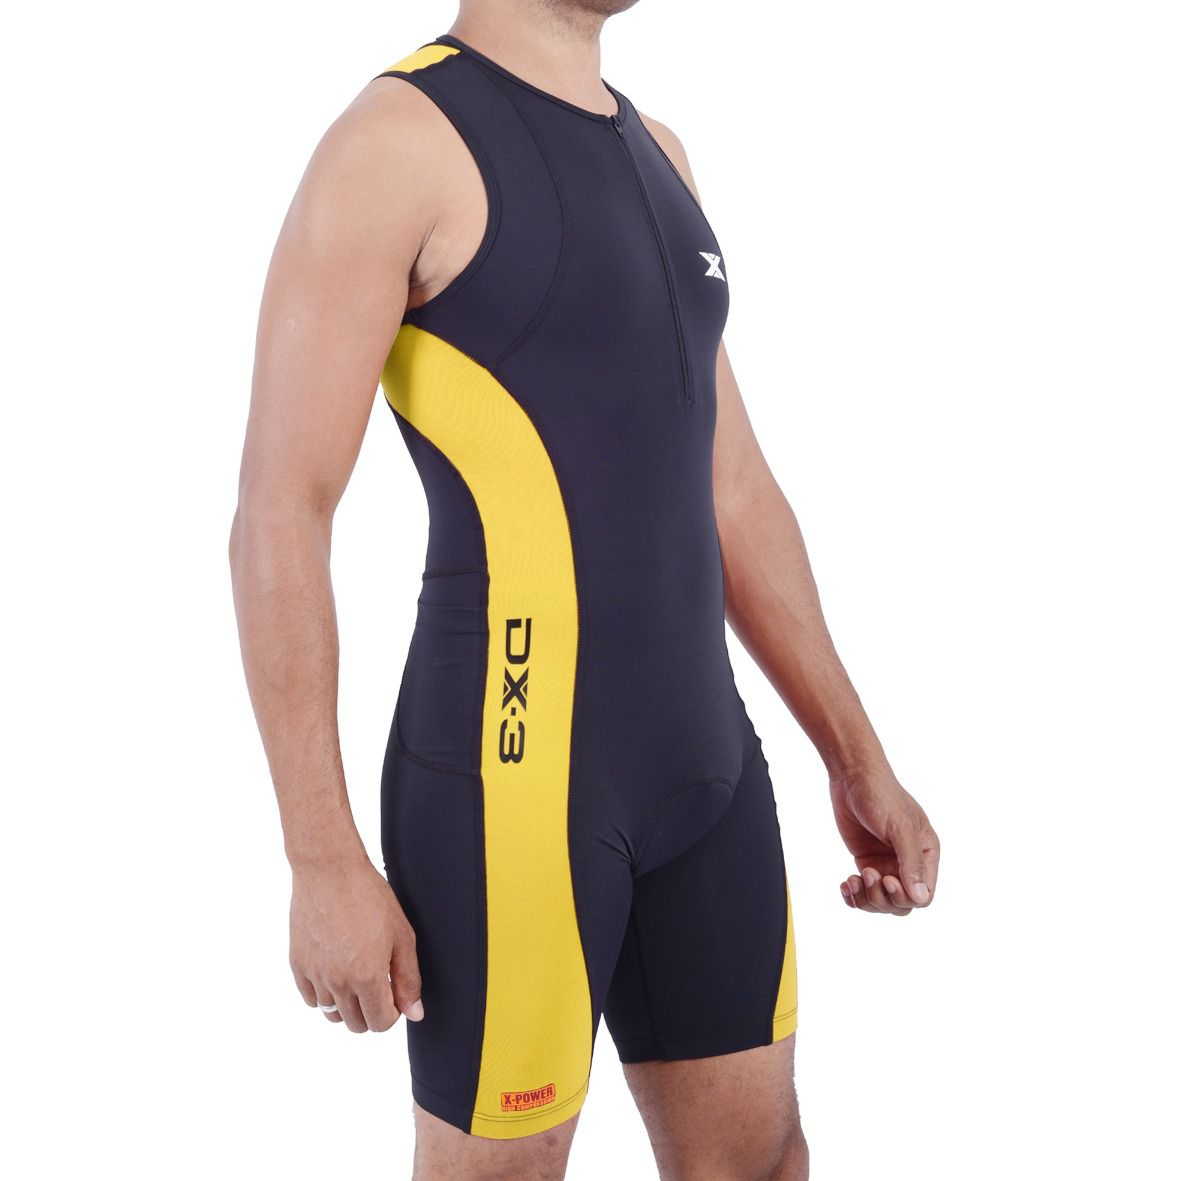 Macaquinho Dx3 Xpower Masculino Triathlon